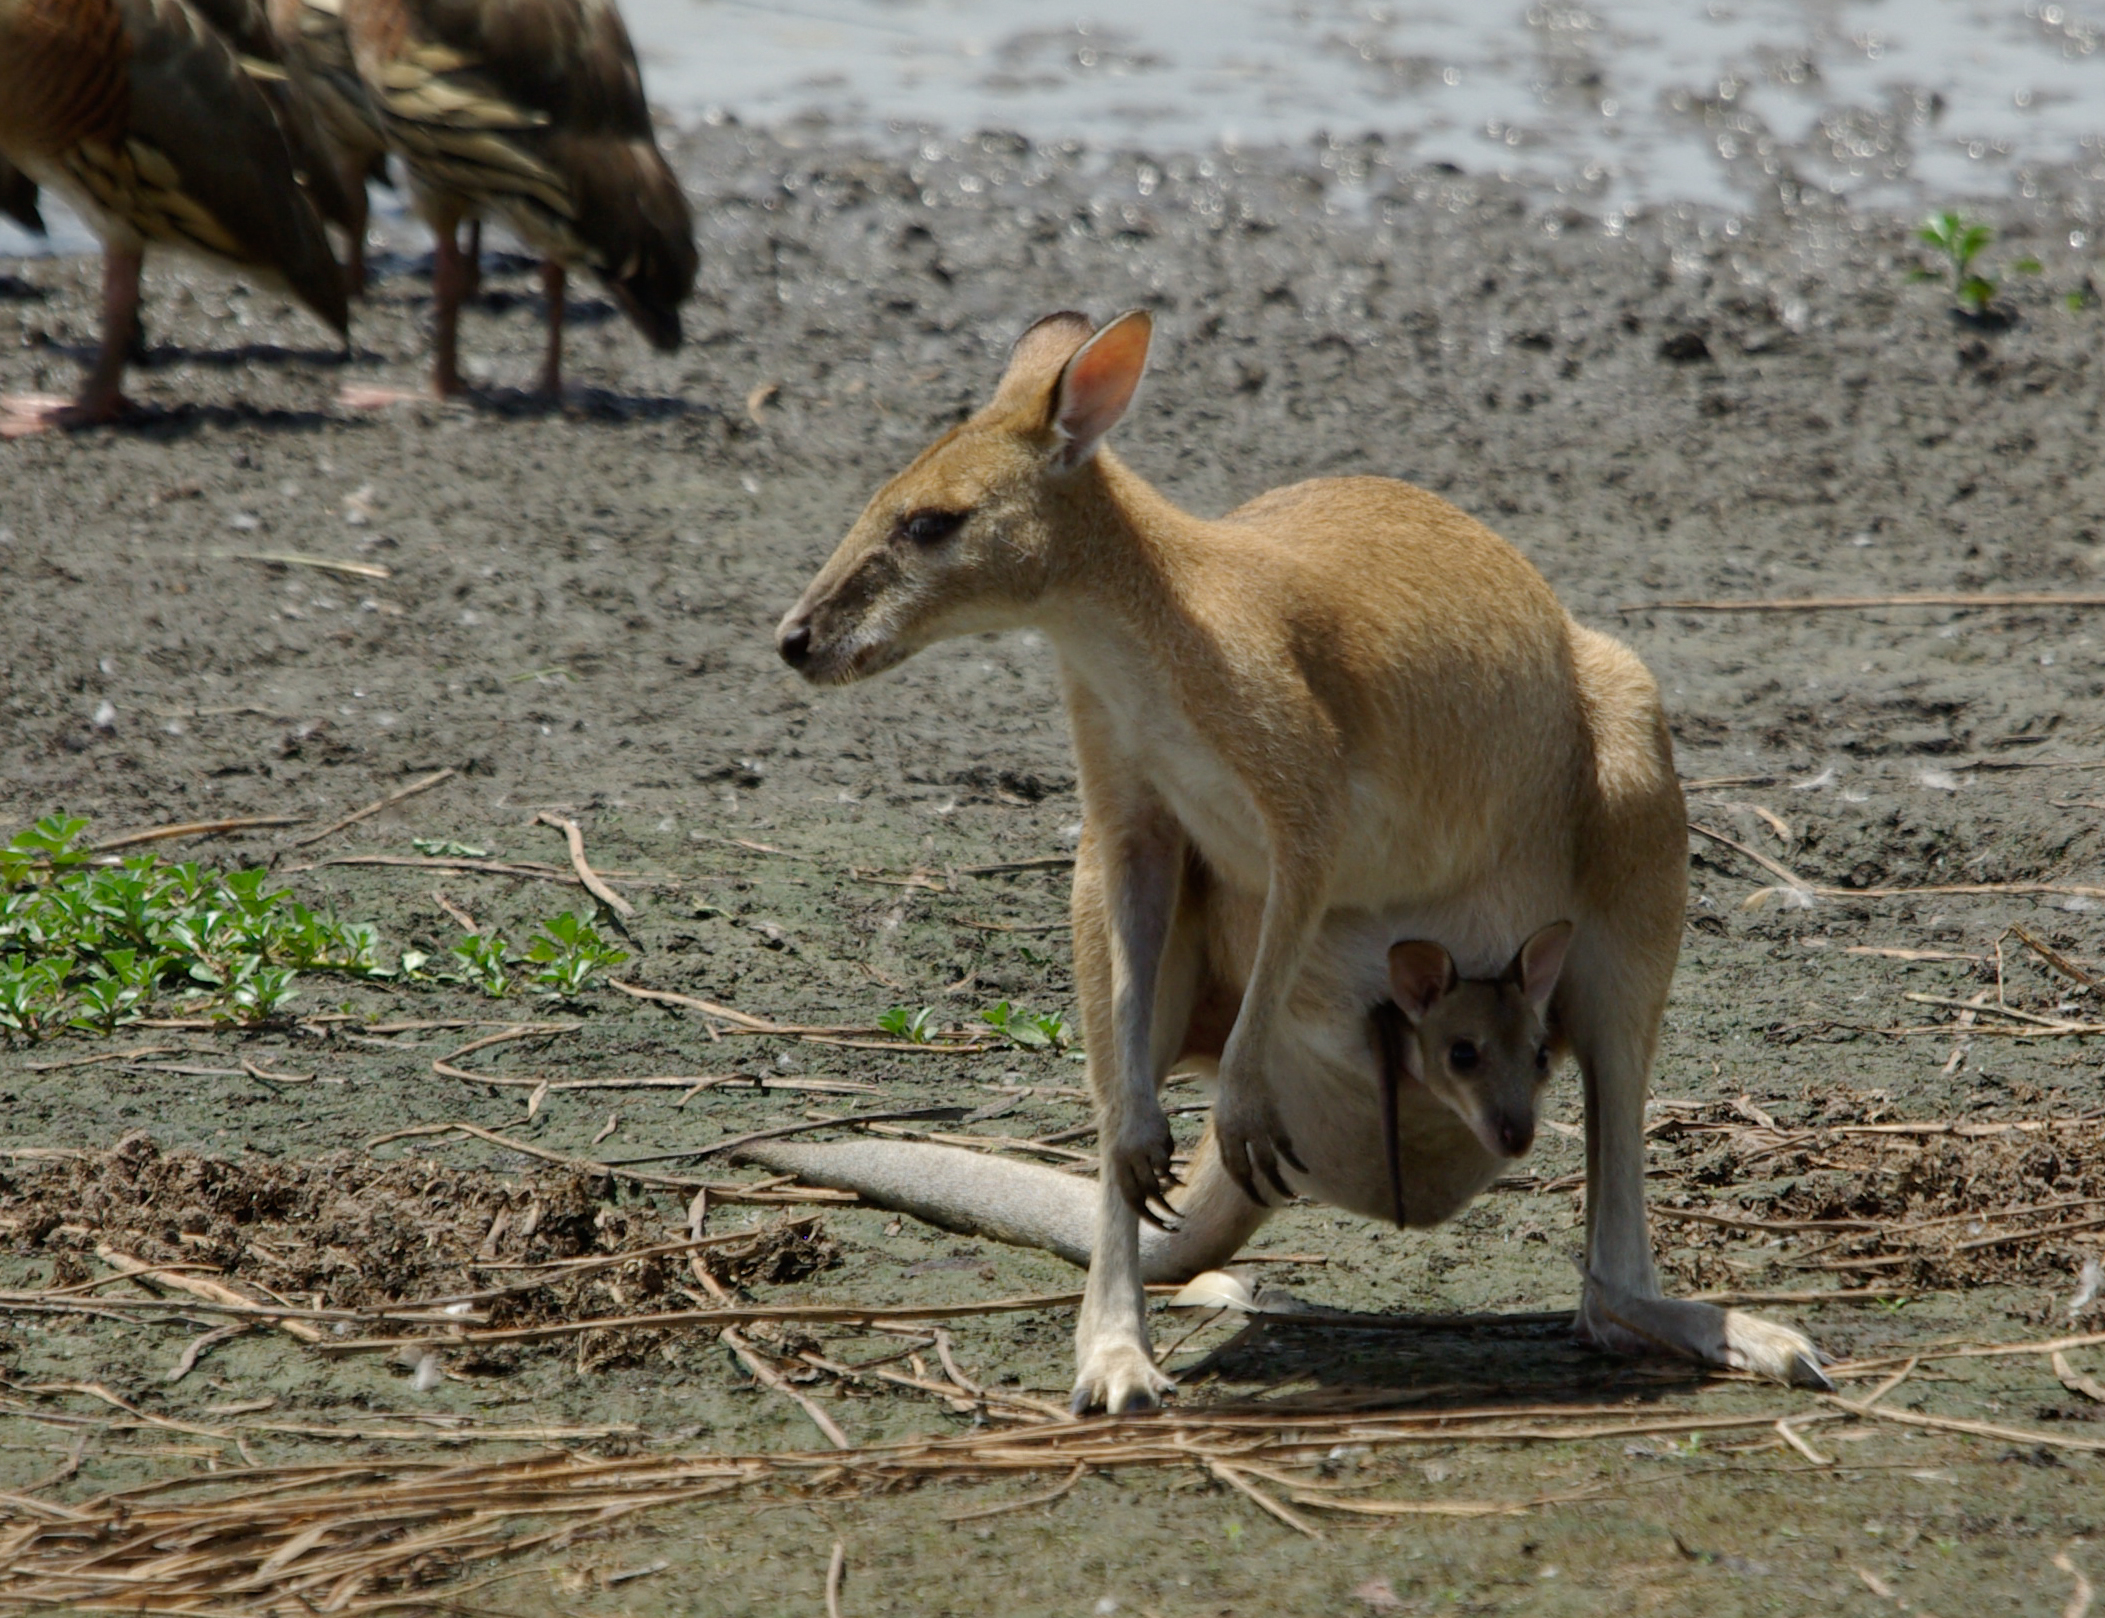 Agile Wallabies risk being taken by Estuarine Crocodiles when they come down to drink at Mamukala © Barry Robinson